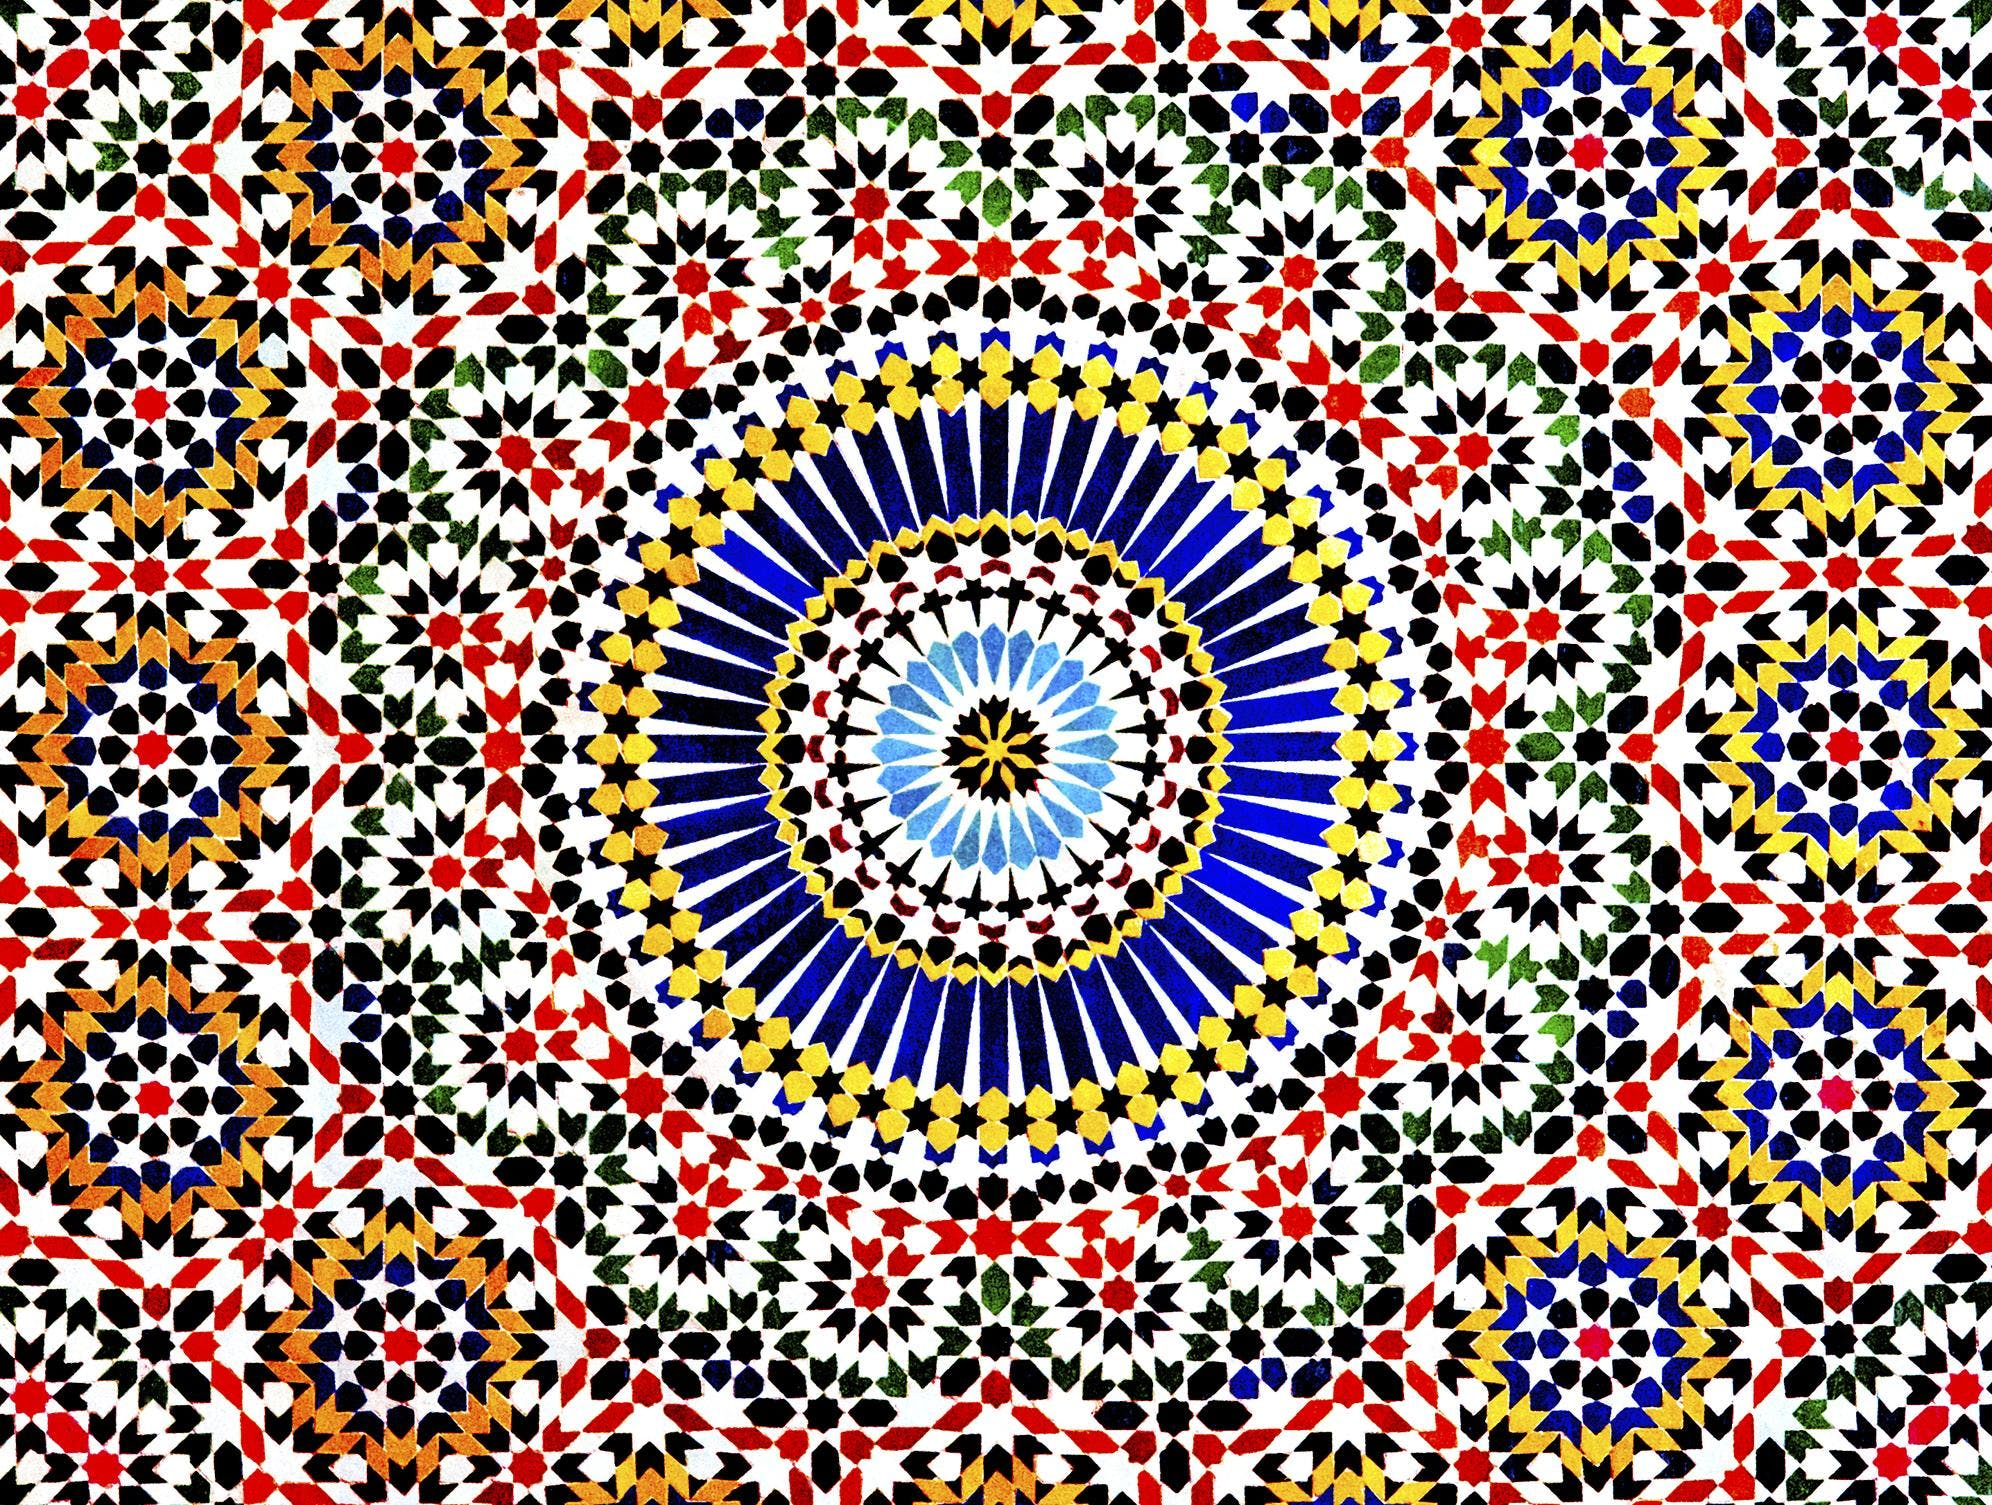 Middle Eastern Geometric Art and Patterns